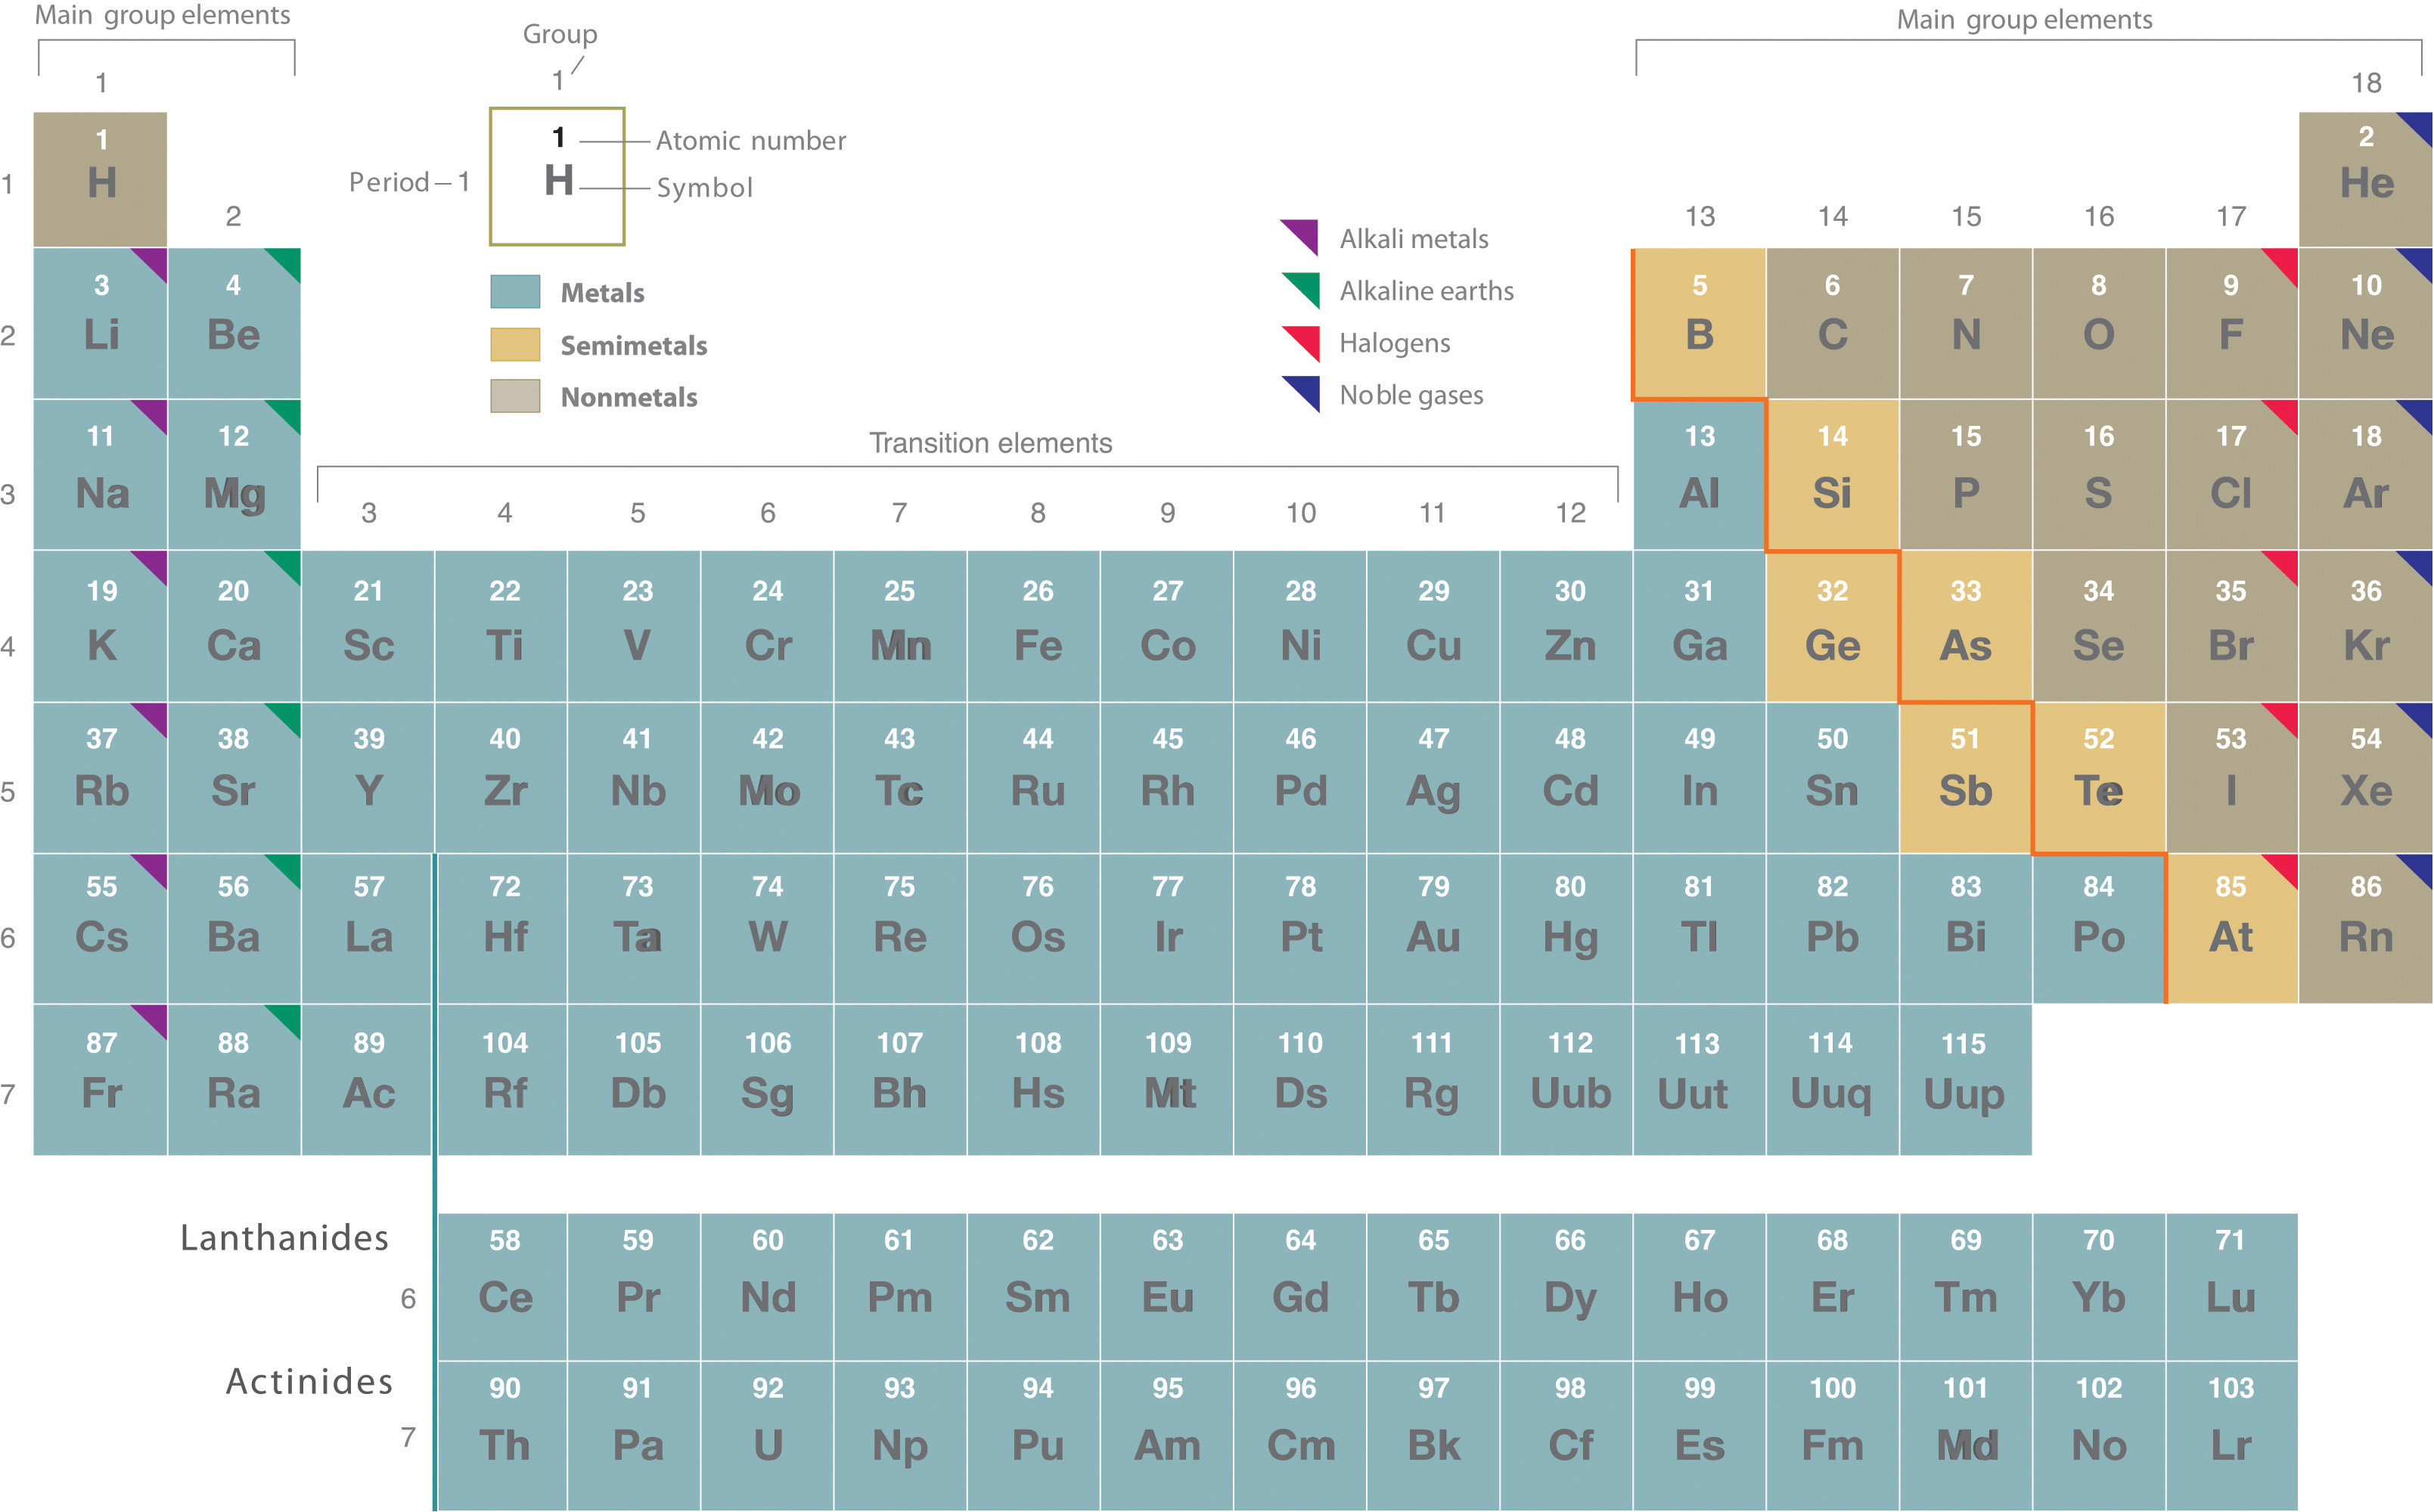 Periodic table alkali metals located periodic table metals periodic alkali located table of 124 figure the order elements periodic showing in table the urtaz Choice Image